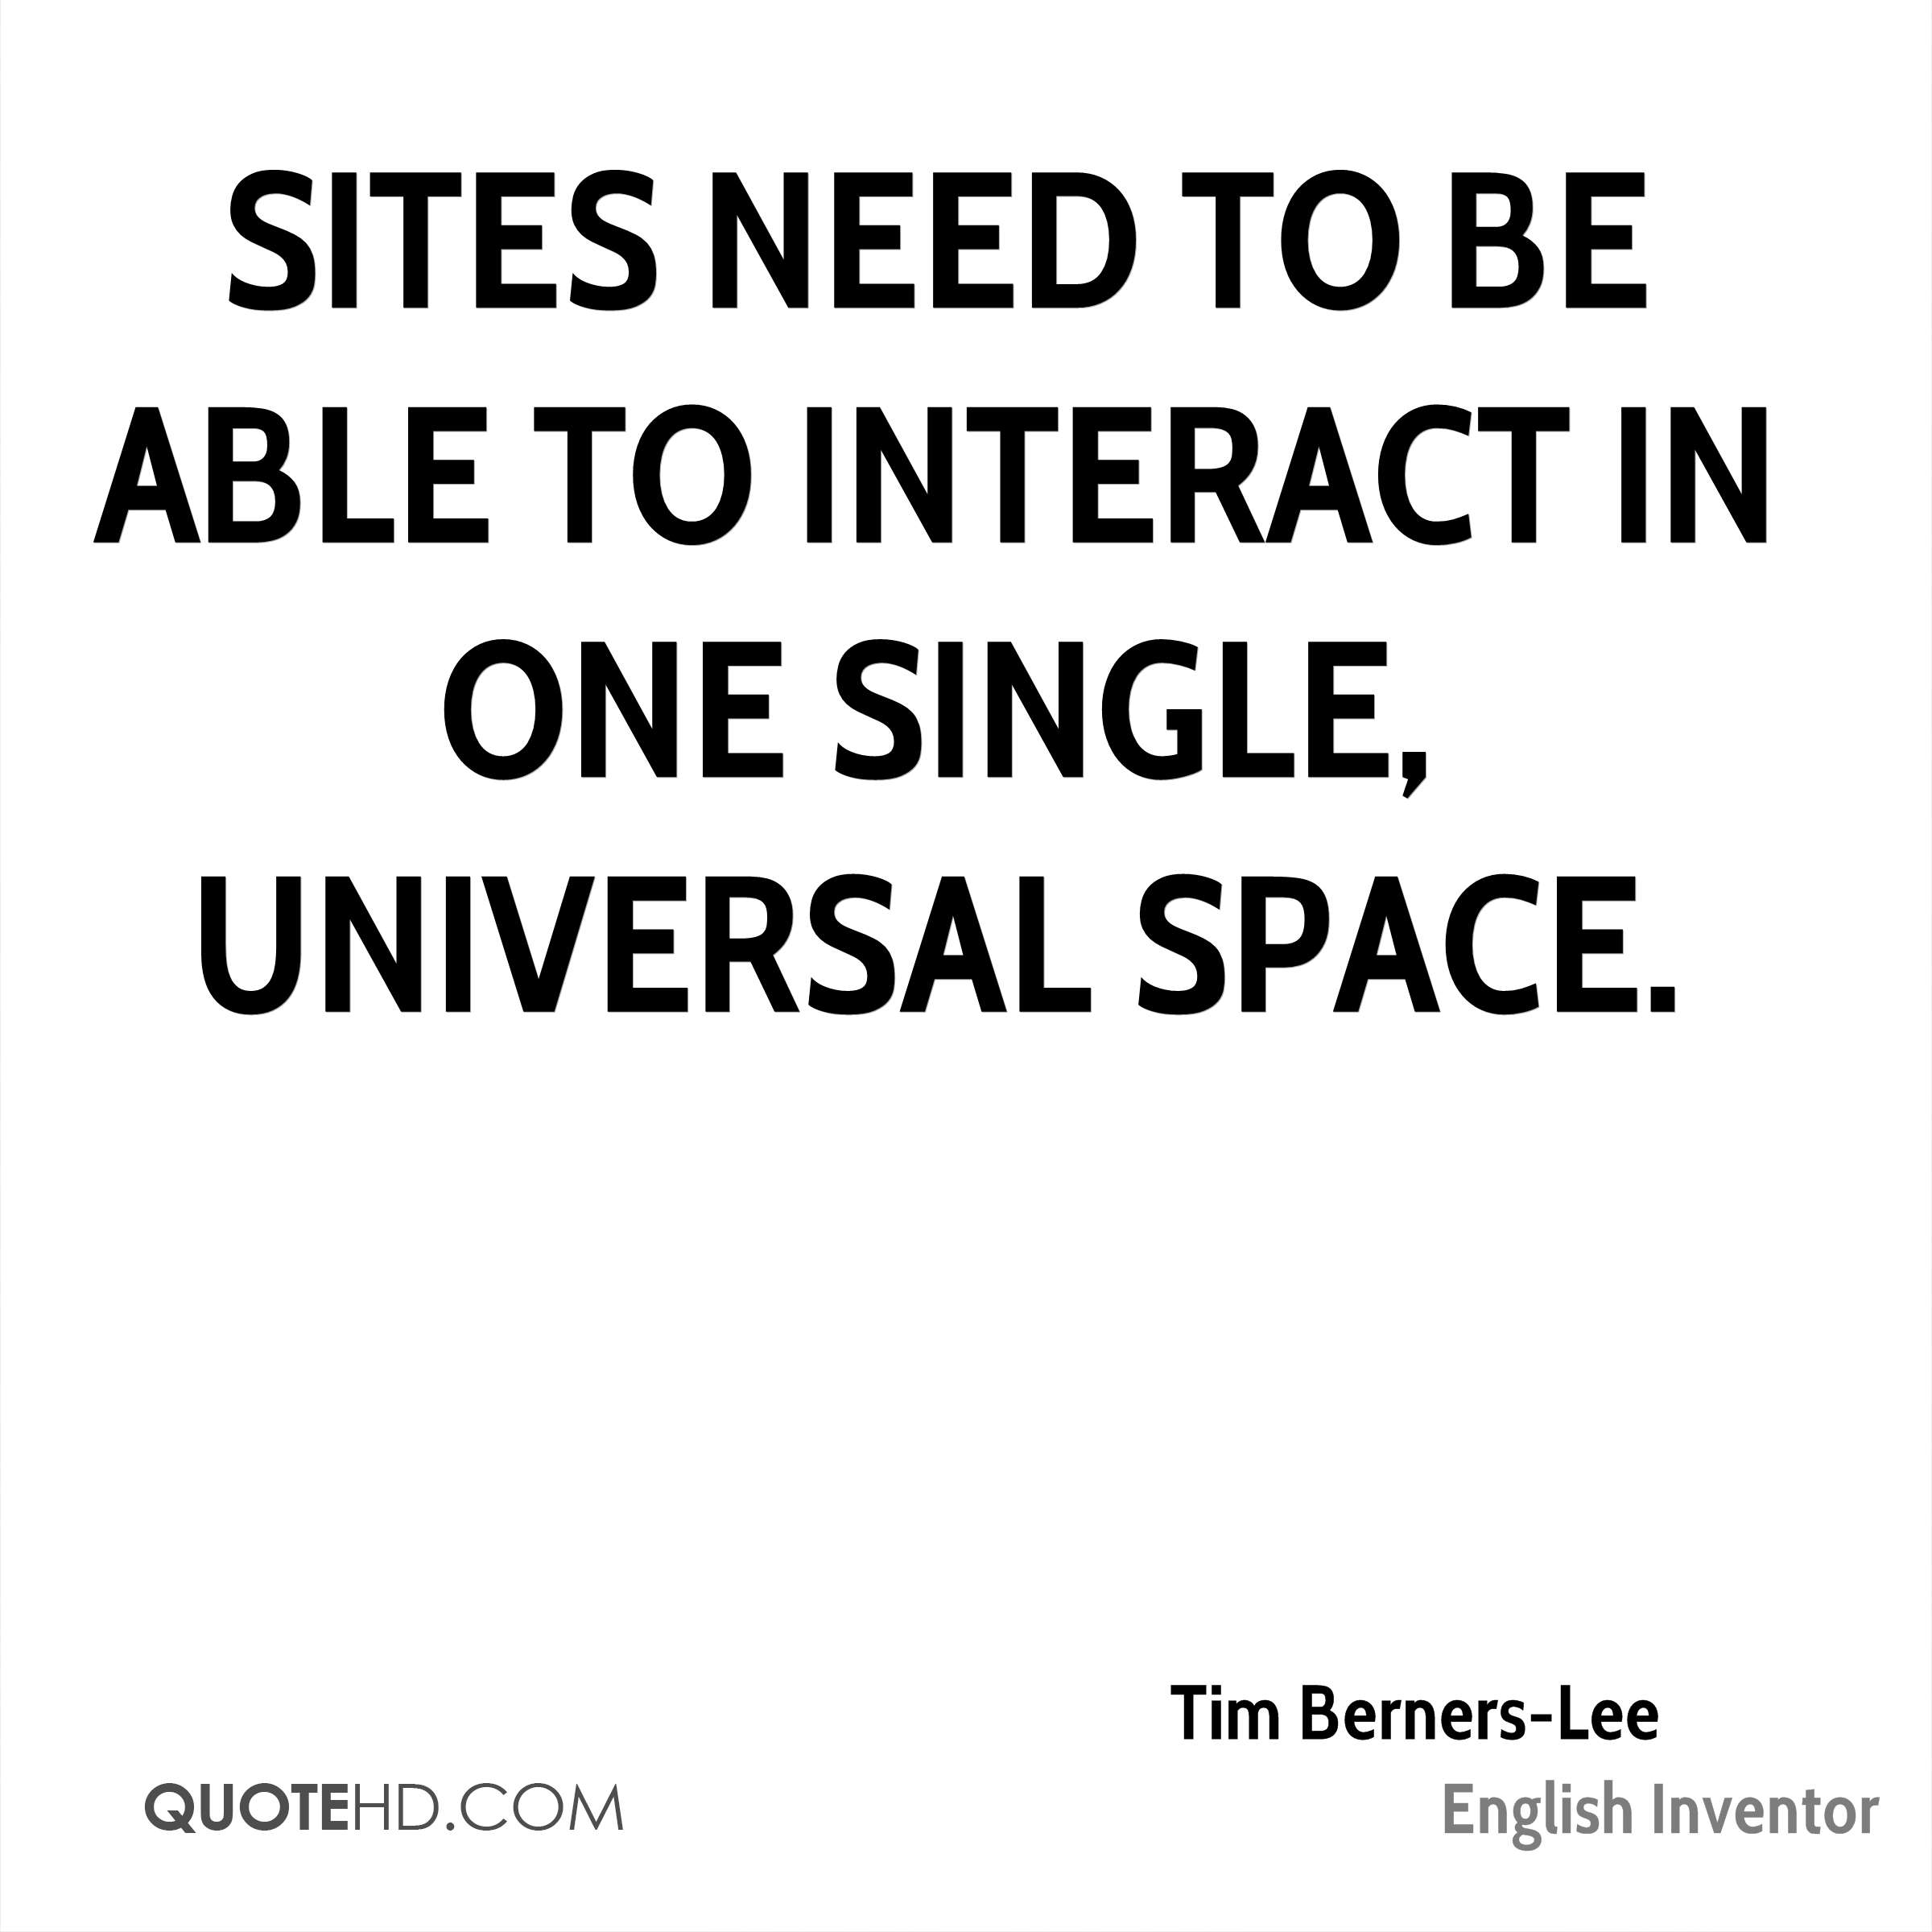 Sites need to be able to interact in one single, universal space.